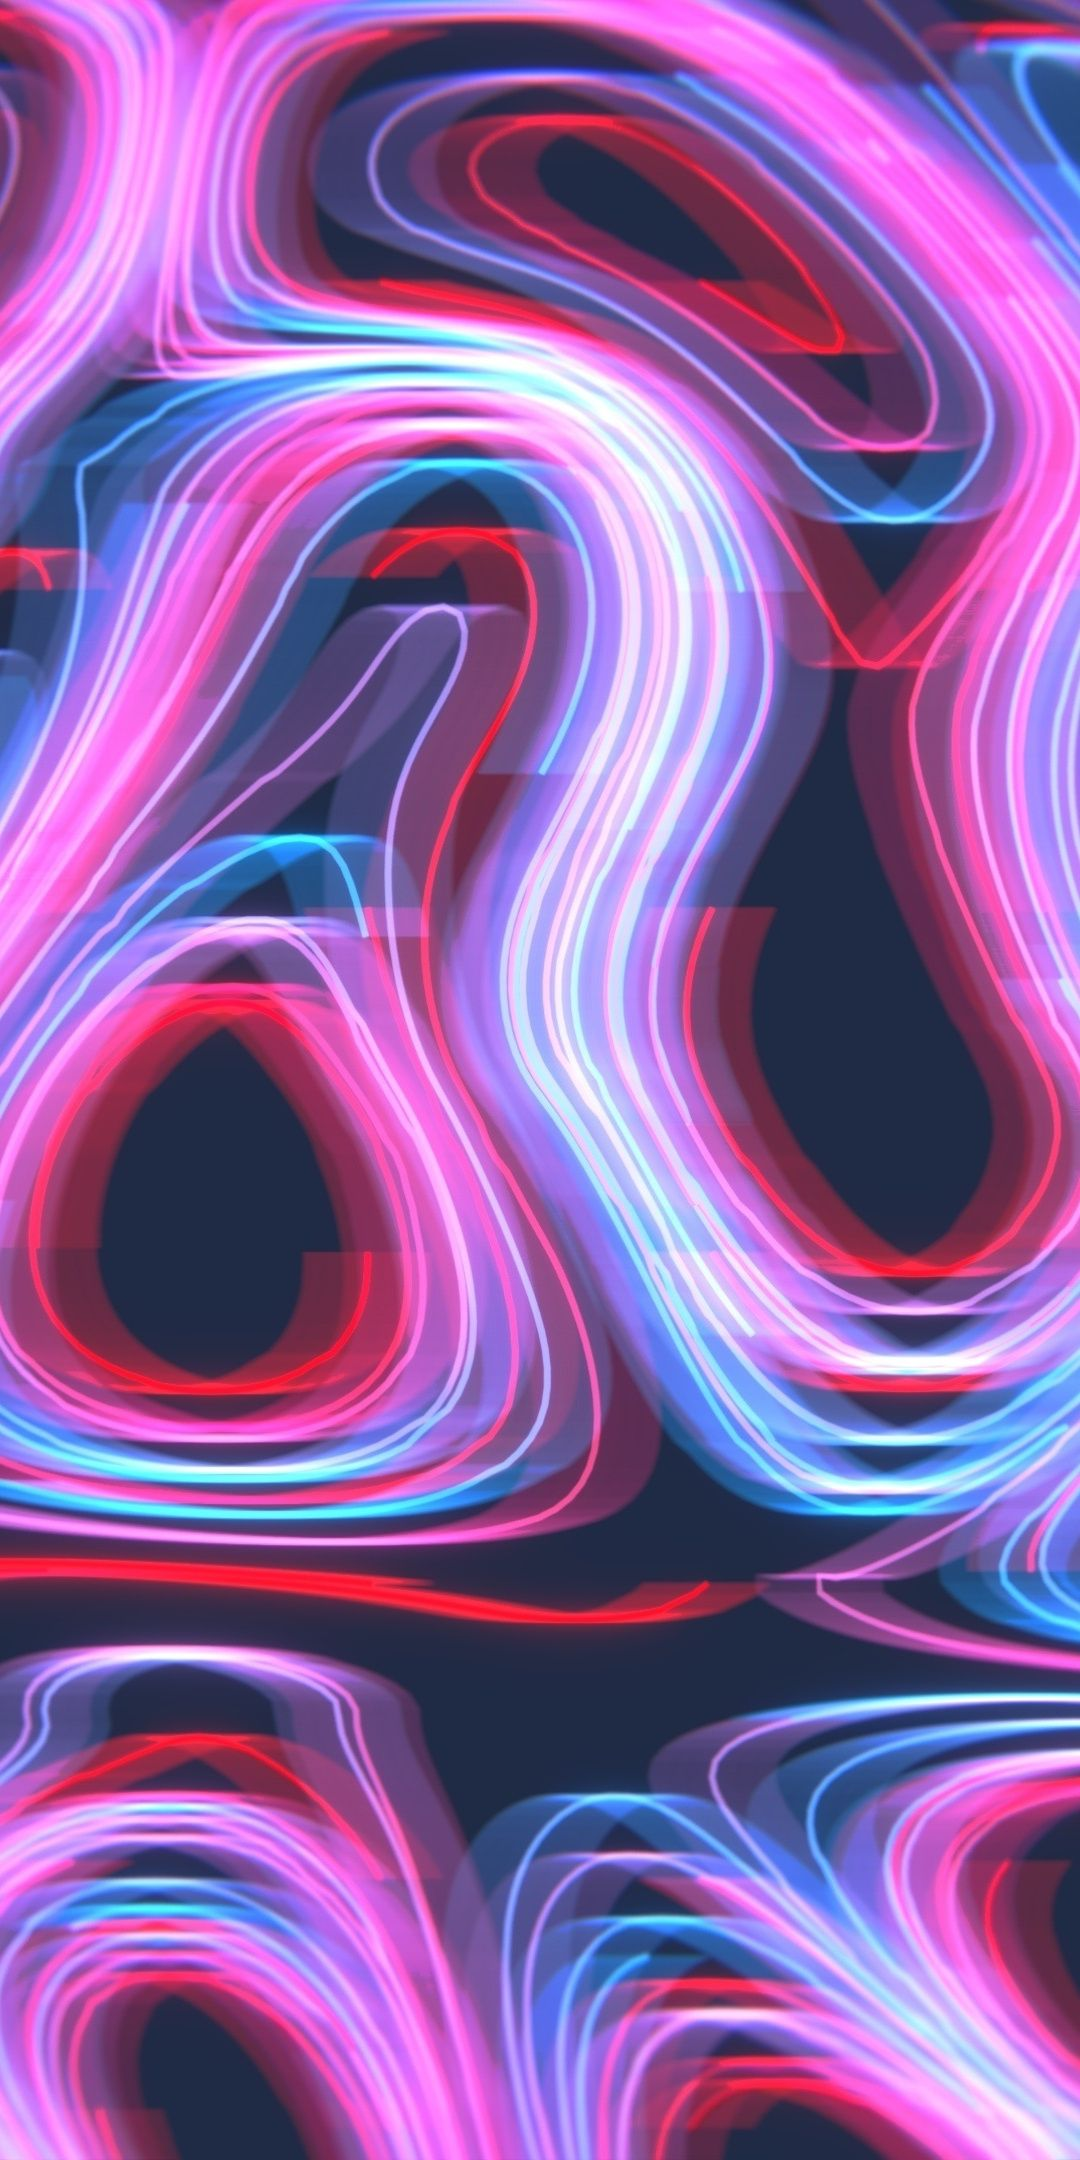 Download 1080x2160 Wallpaper Neon Pattern Curves Lines